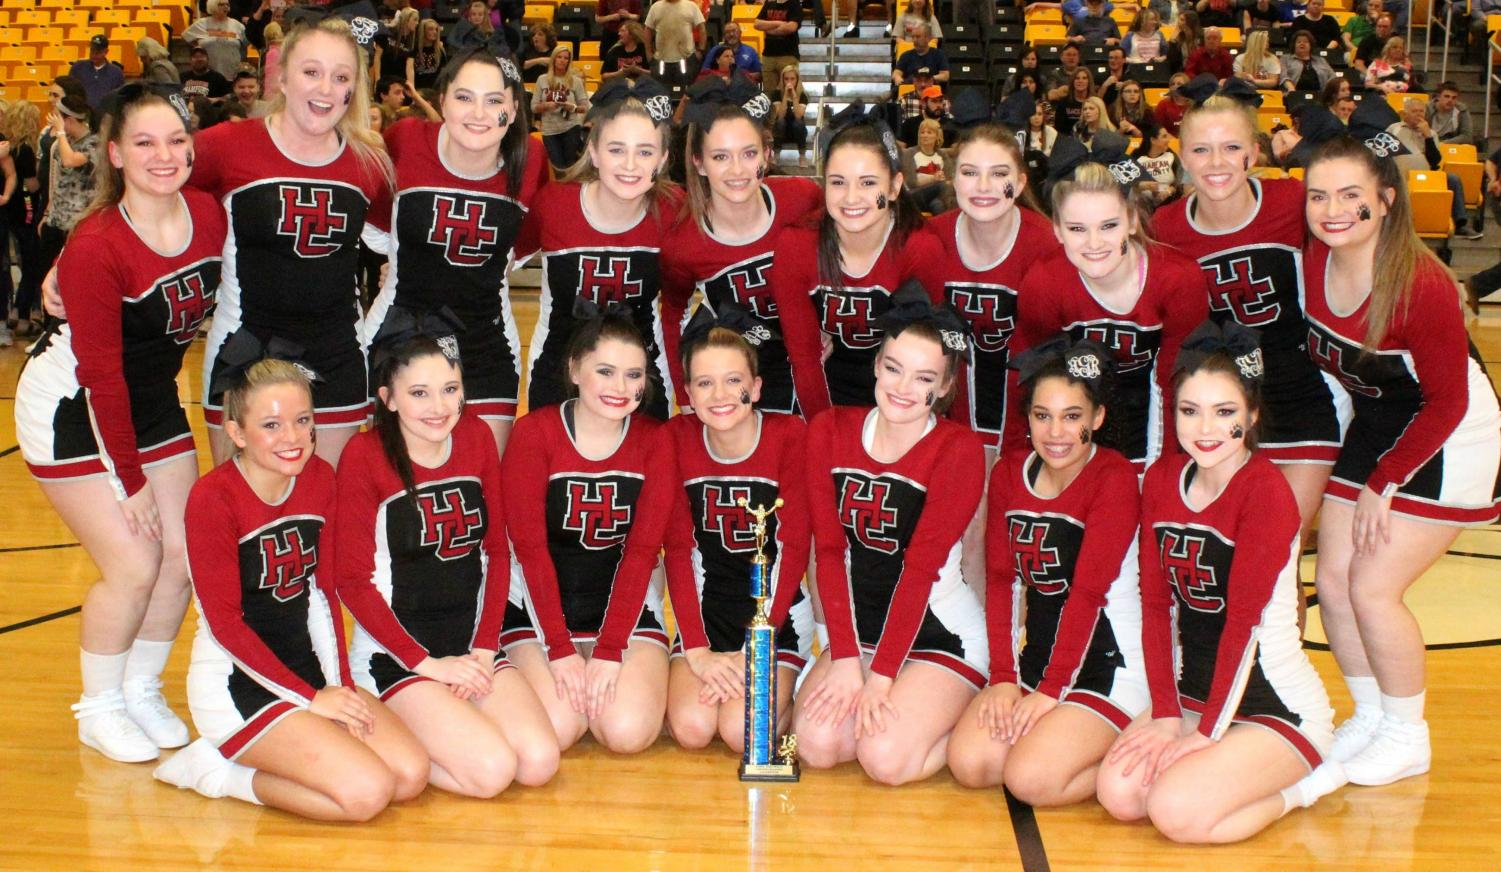 The Harlan County High School cheerleaders captured their third straight 52nd District Tournament cheerleading title on Friday at Middlesboro High School. Squad members include, from left, front row: Ally Alred, Shawnee Cress, Grayson Raleigh, Rhileigh Alred, McKenzie Bundy, Keke Gist and Amber Goodin; back row: Brittany Dummitt, Peyton Griffin, Emily Eldridge, Katiera Lewis, Karyssa Lamb, Bailey Brock, Madison Tolliver, Mahalah Bundy, Baili Boggs and Kerstin Perkins. The squad is coached by Anissa Alred.